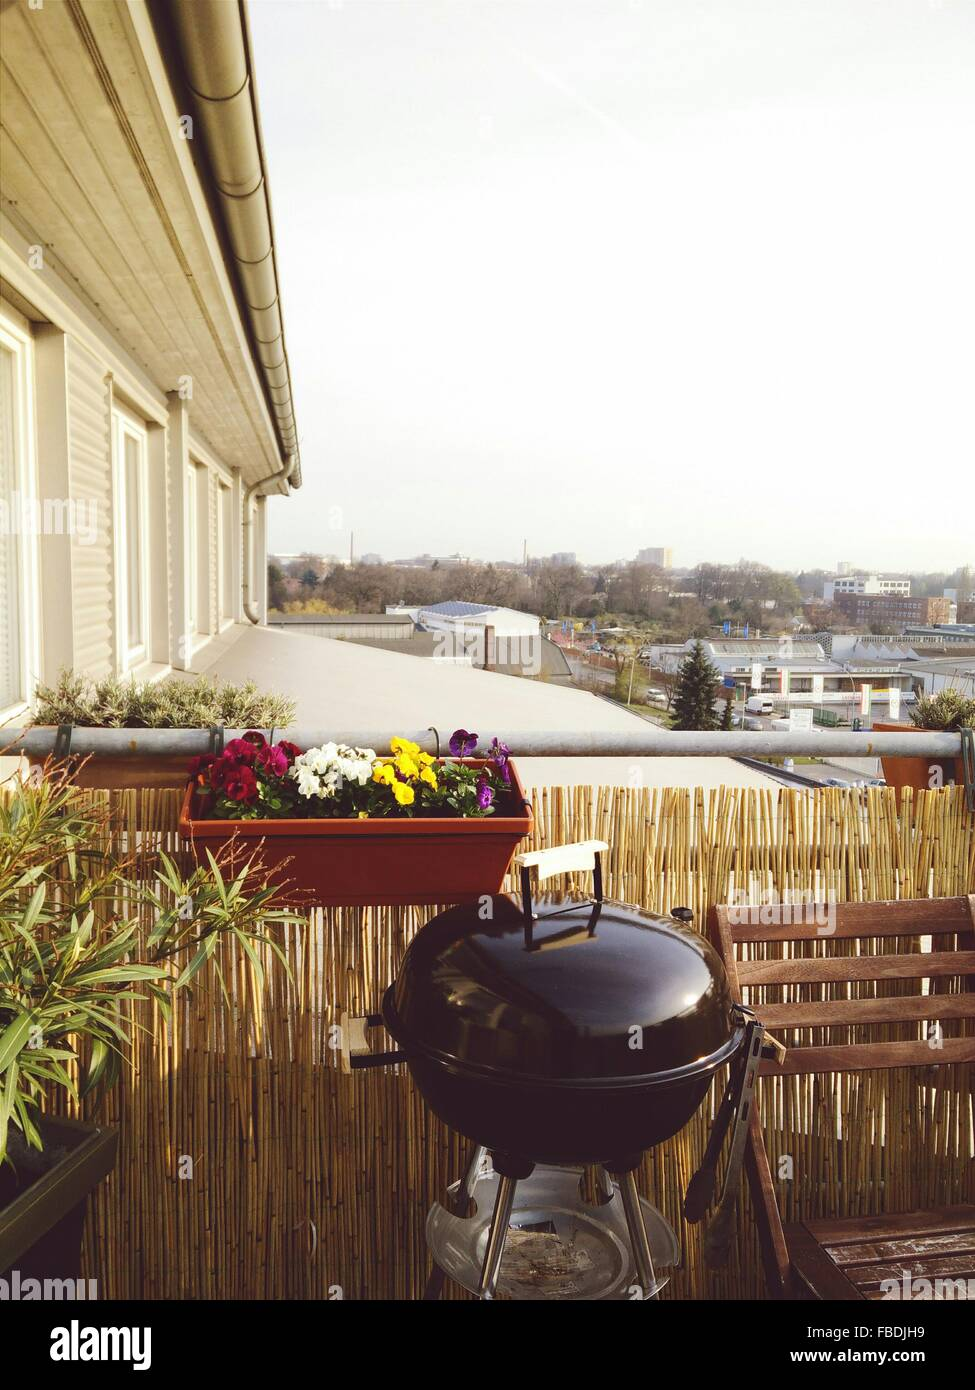 Balcony Grill Stock Photos & Balcony Grill Stock Images